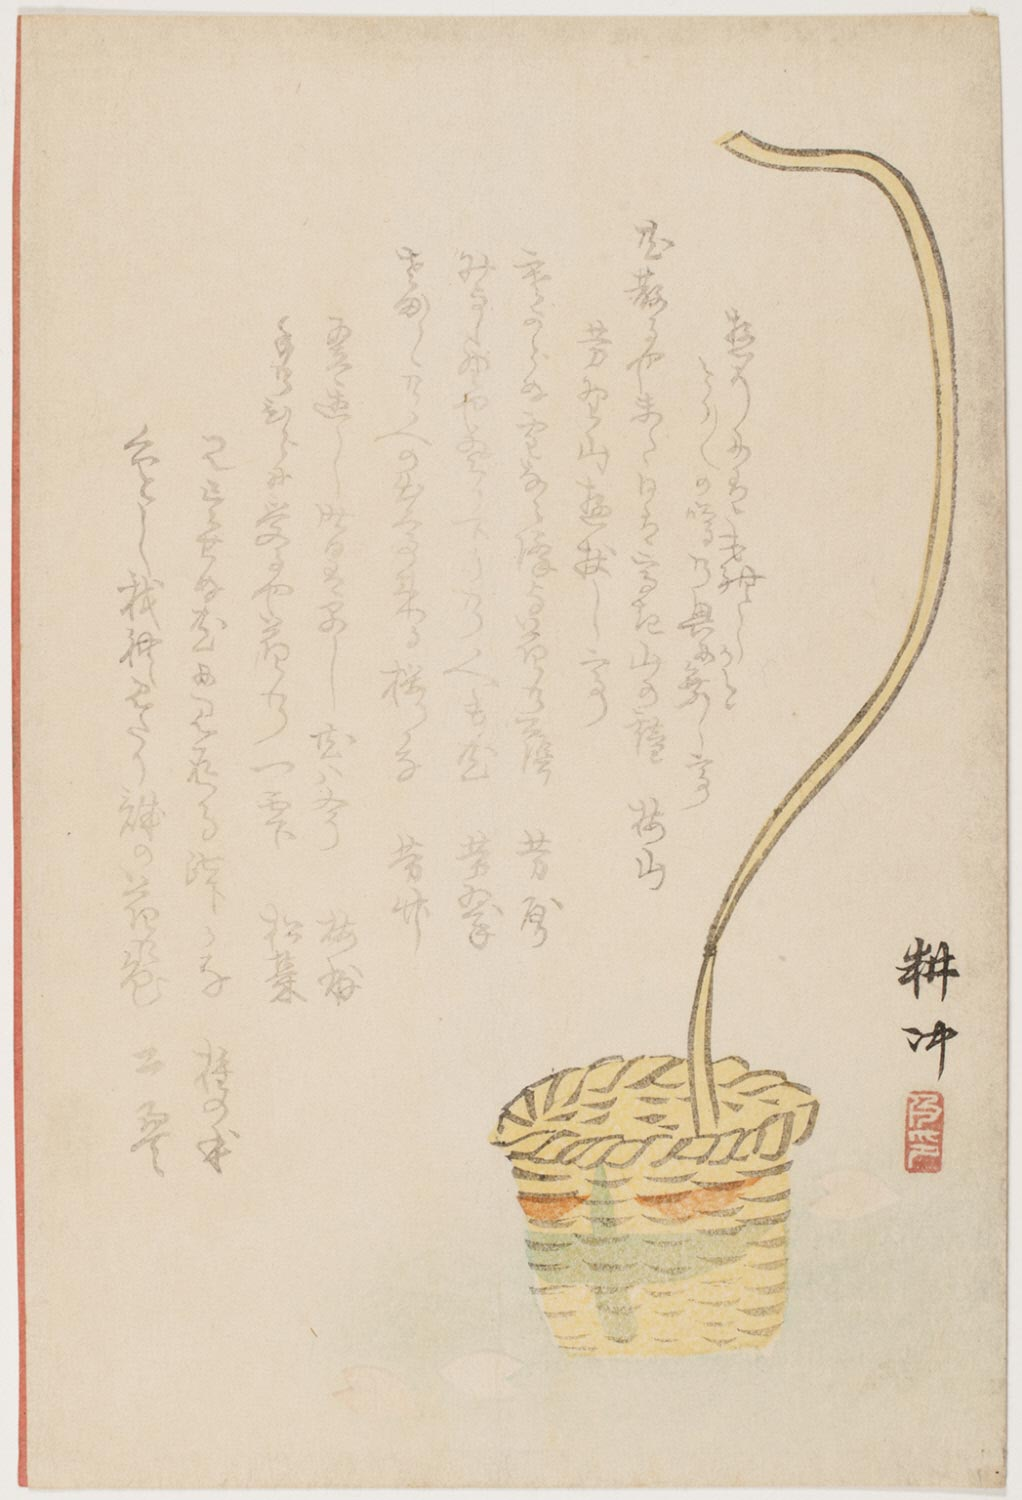 Basket with Snake-like Extended Strand and Poems